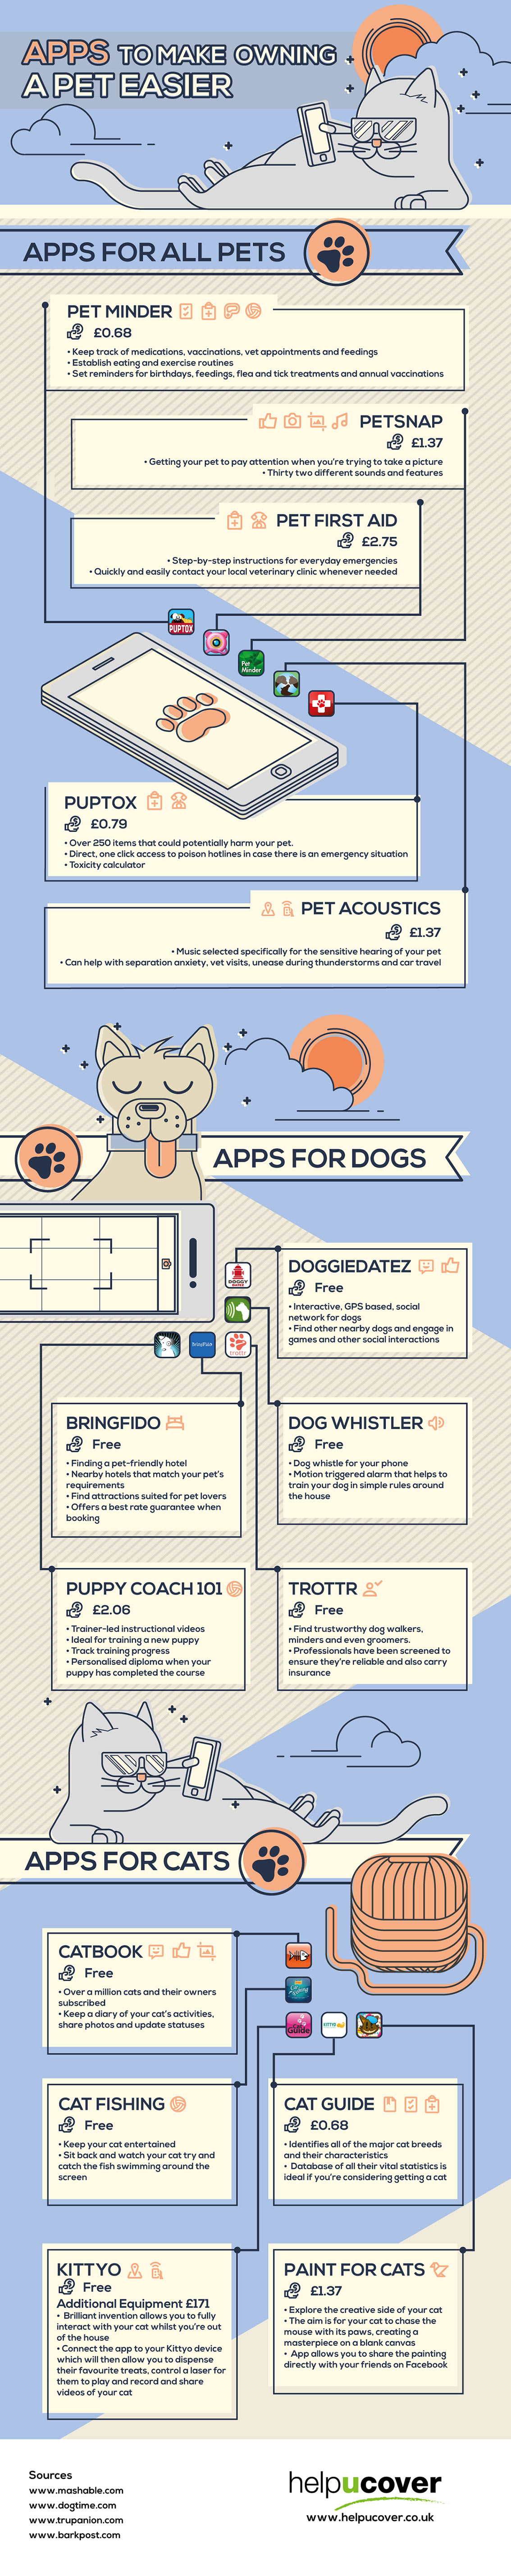 Apps to make Owning a Pet Easier Infographic